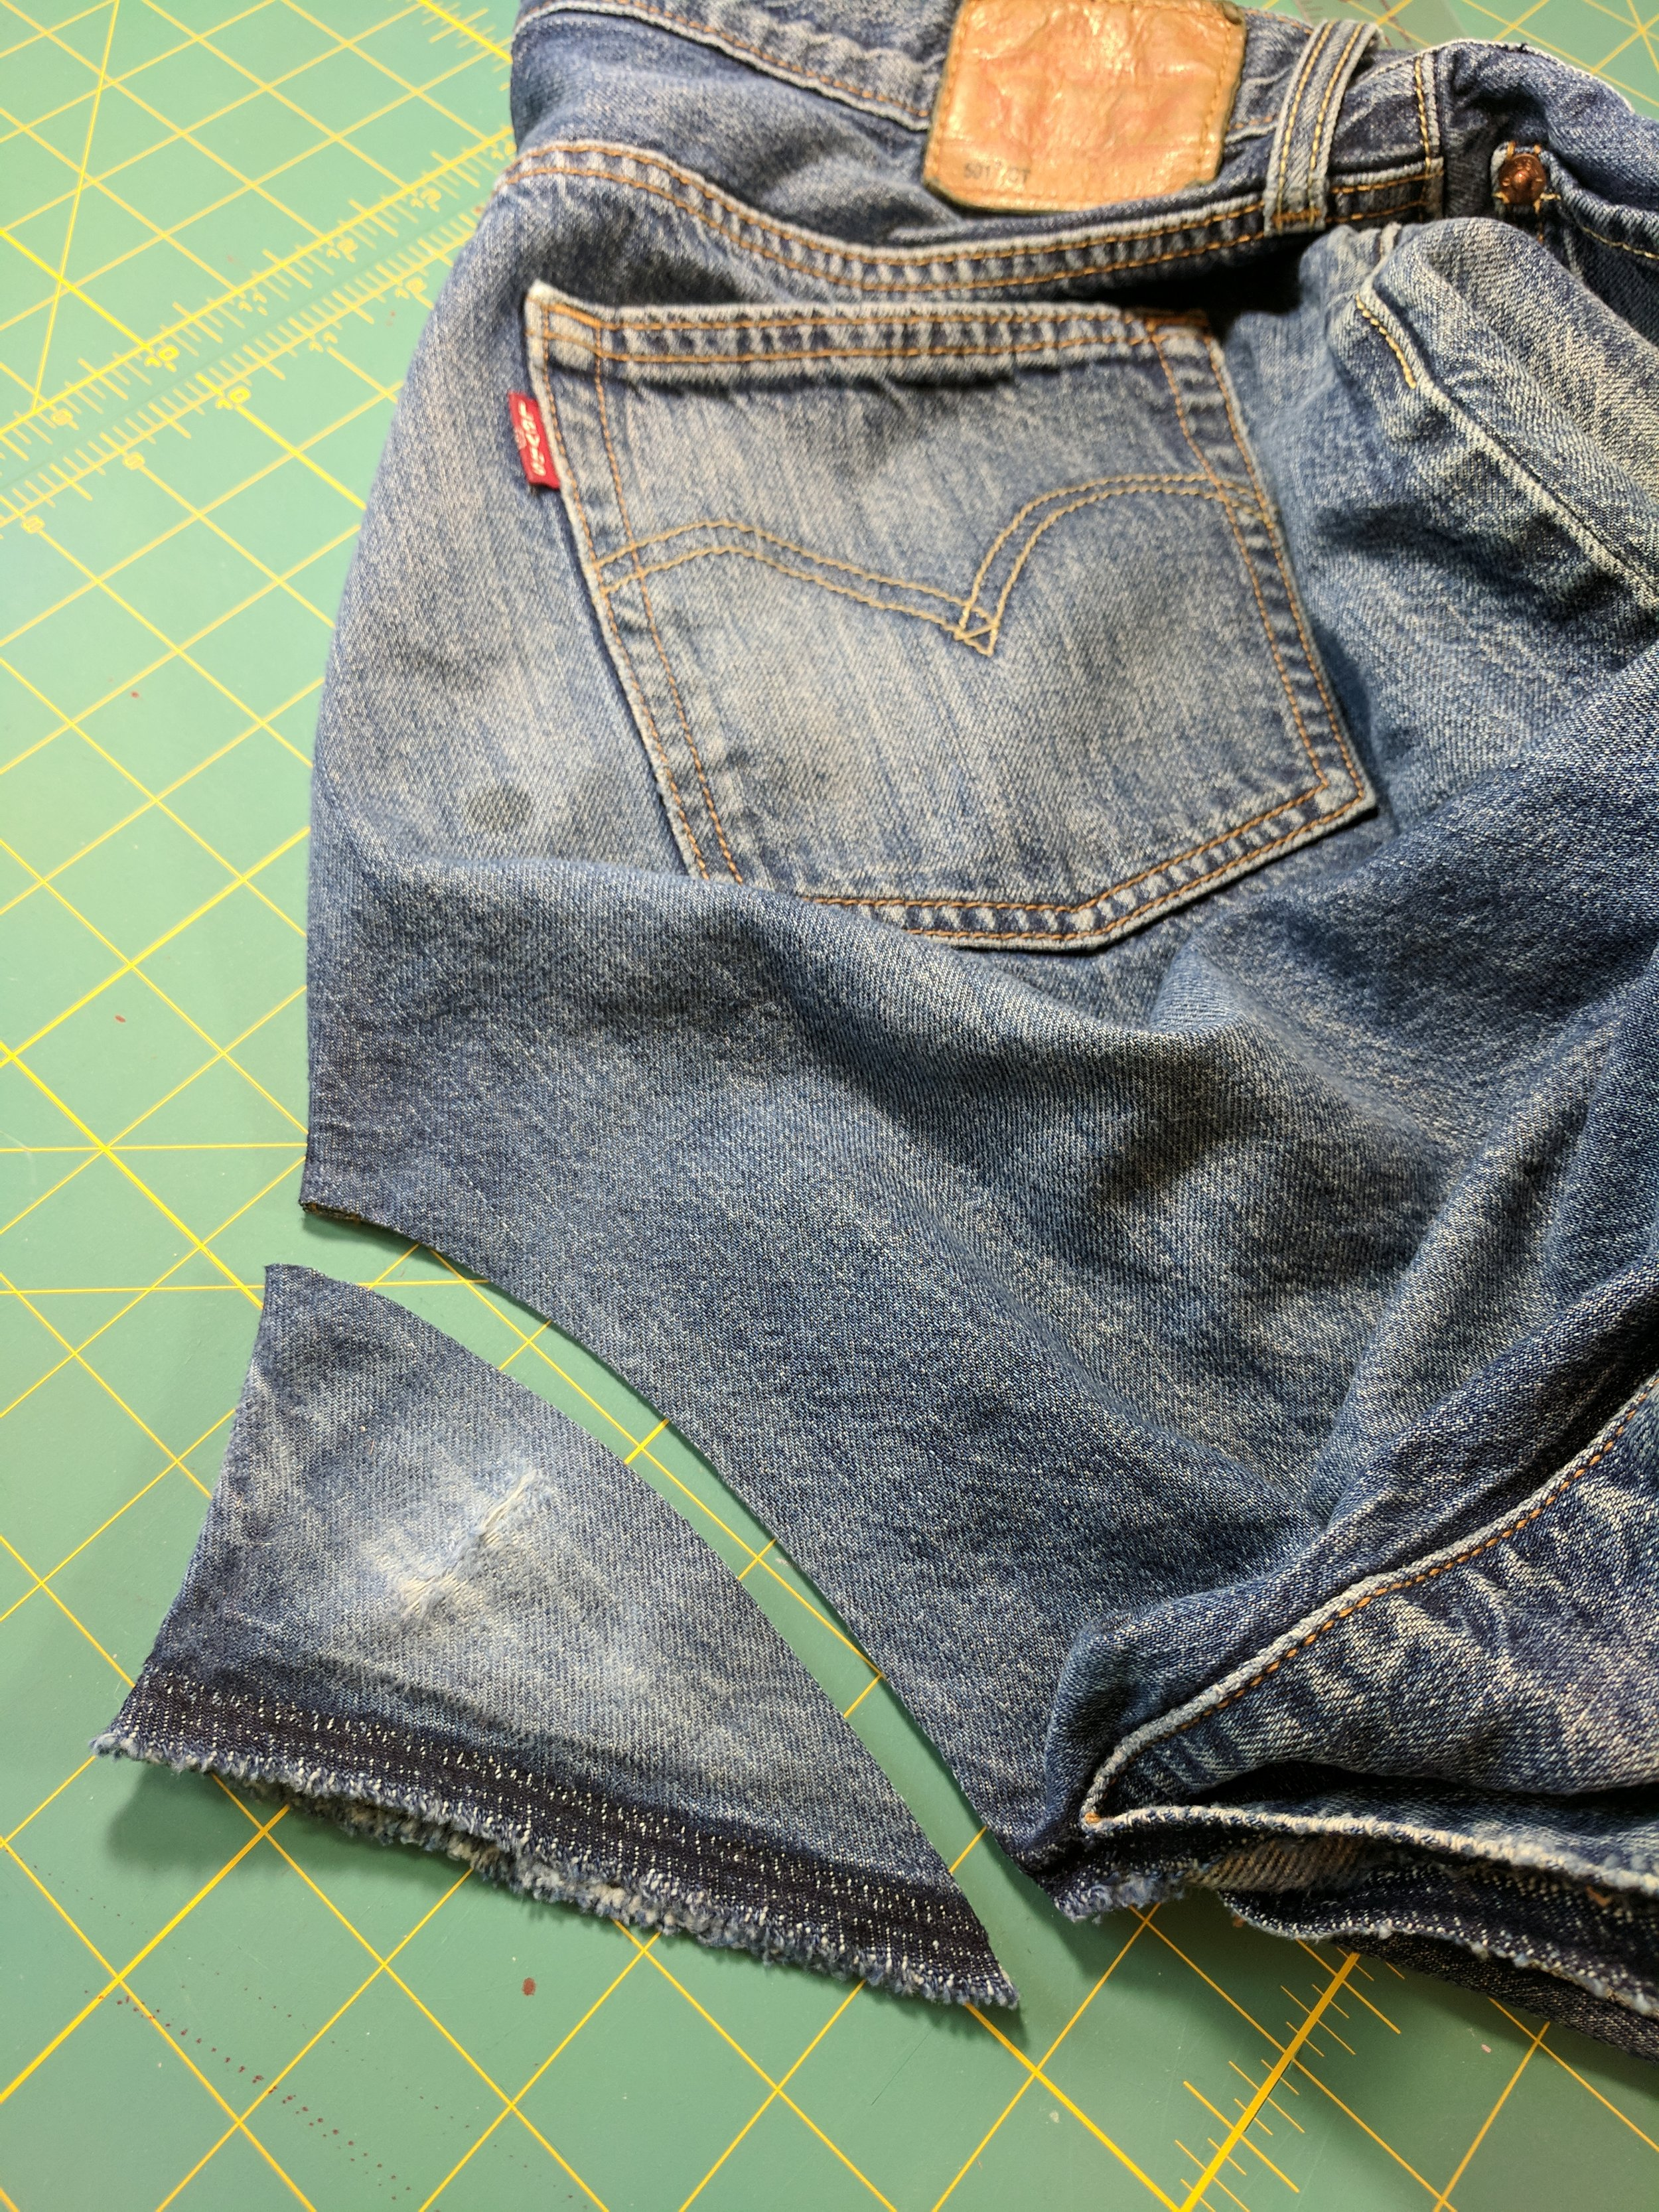 jeans gusset